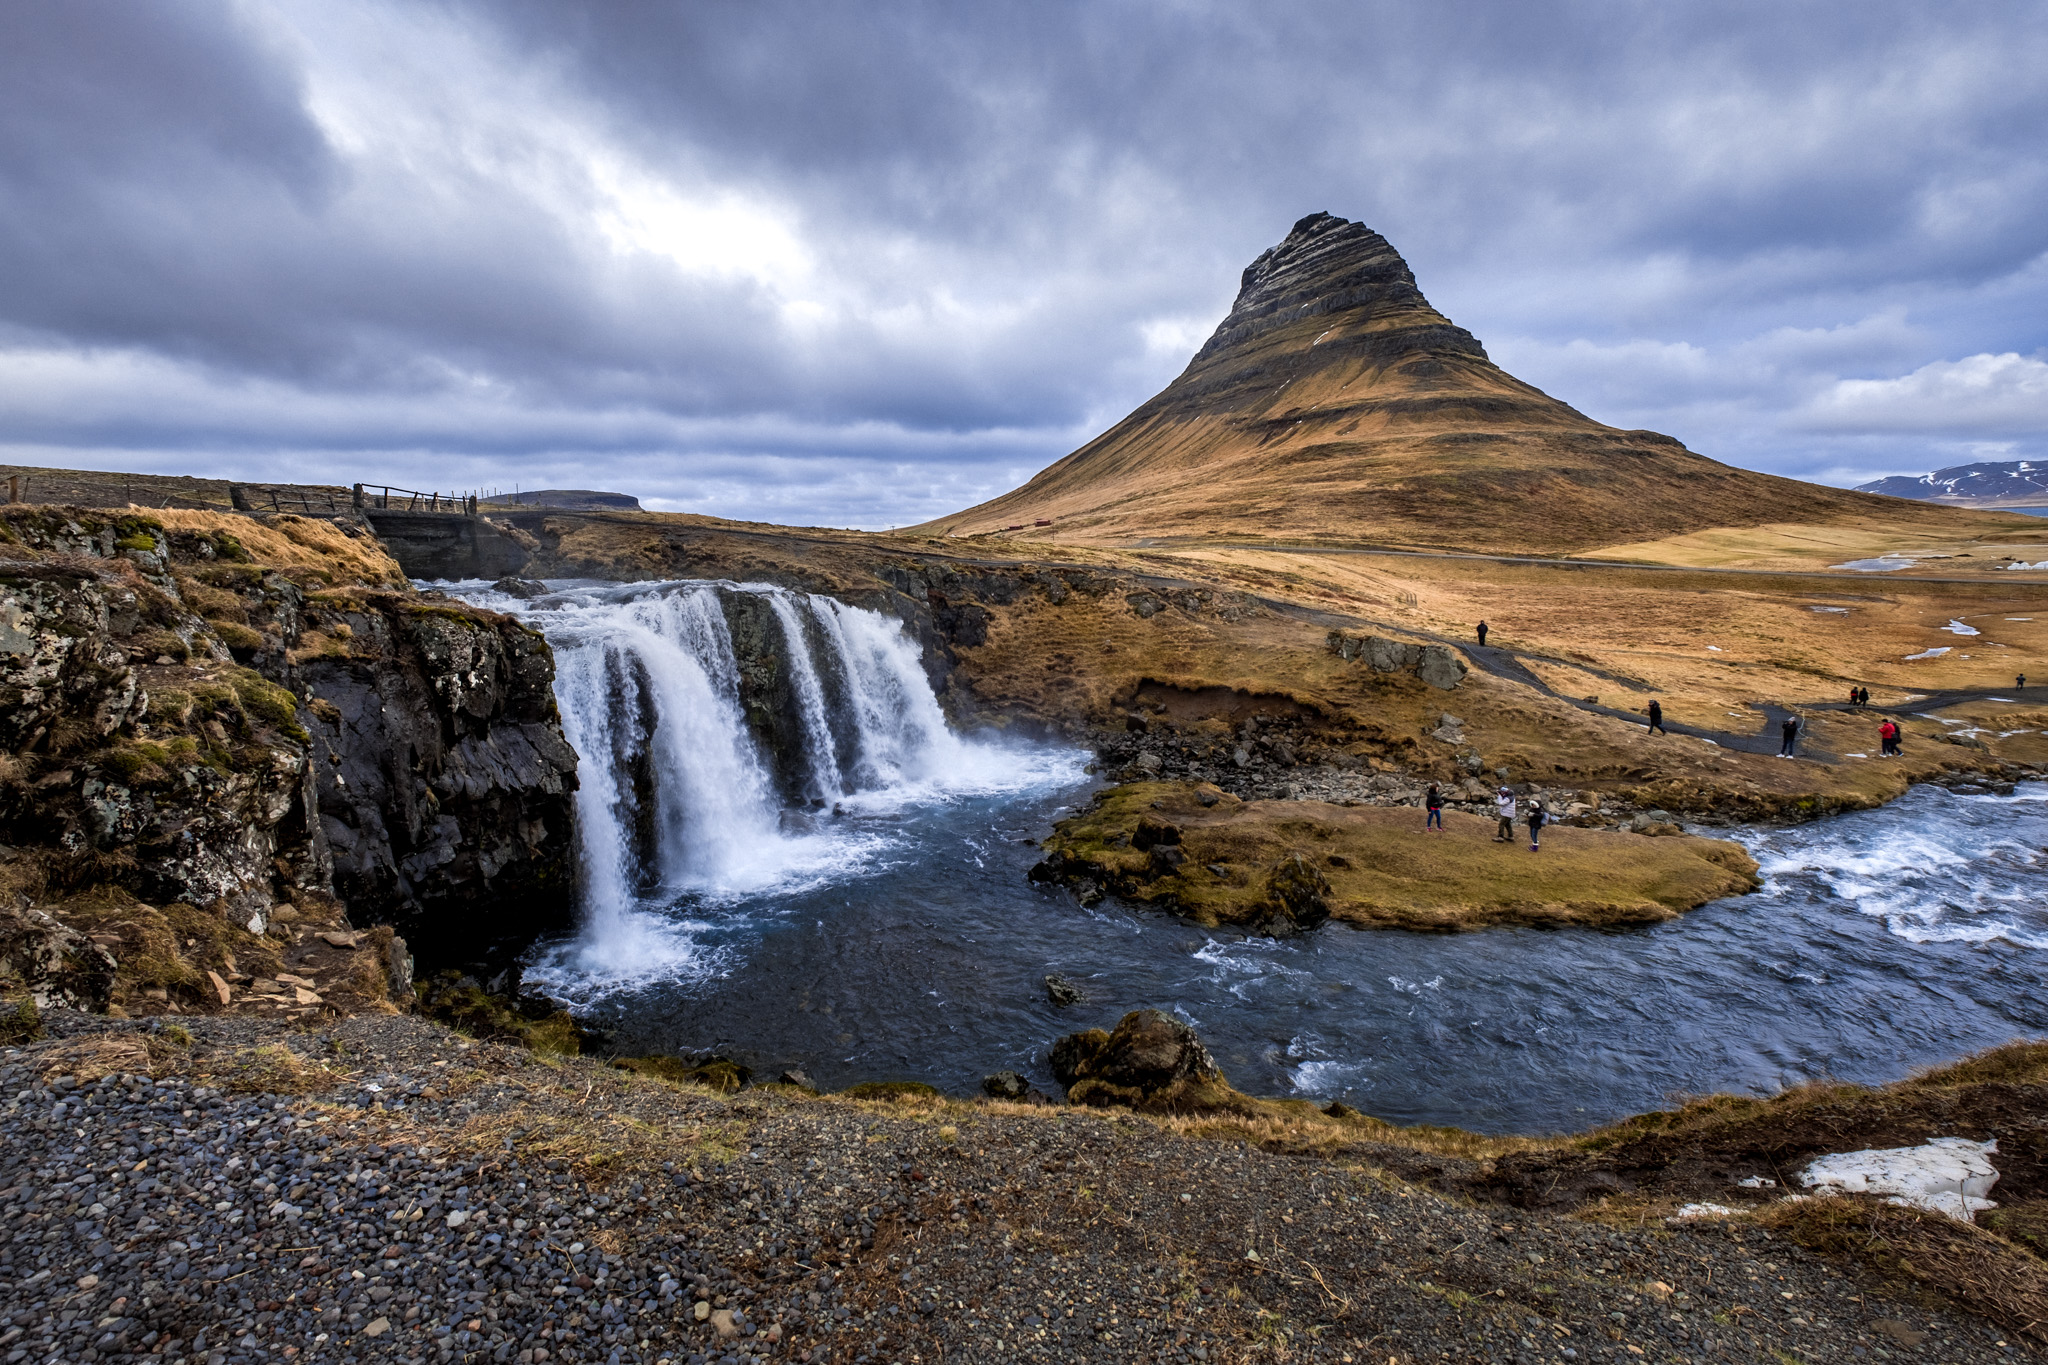 20170408222359_Iceland_By_EjunLow_1873.jpg